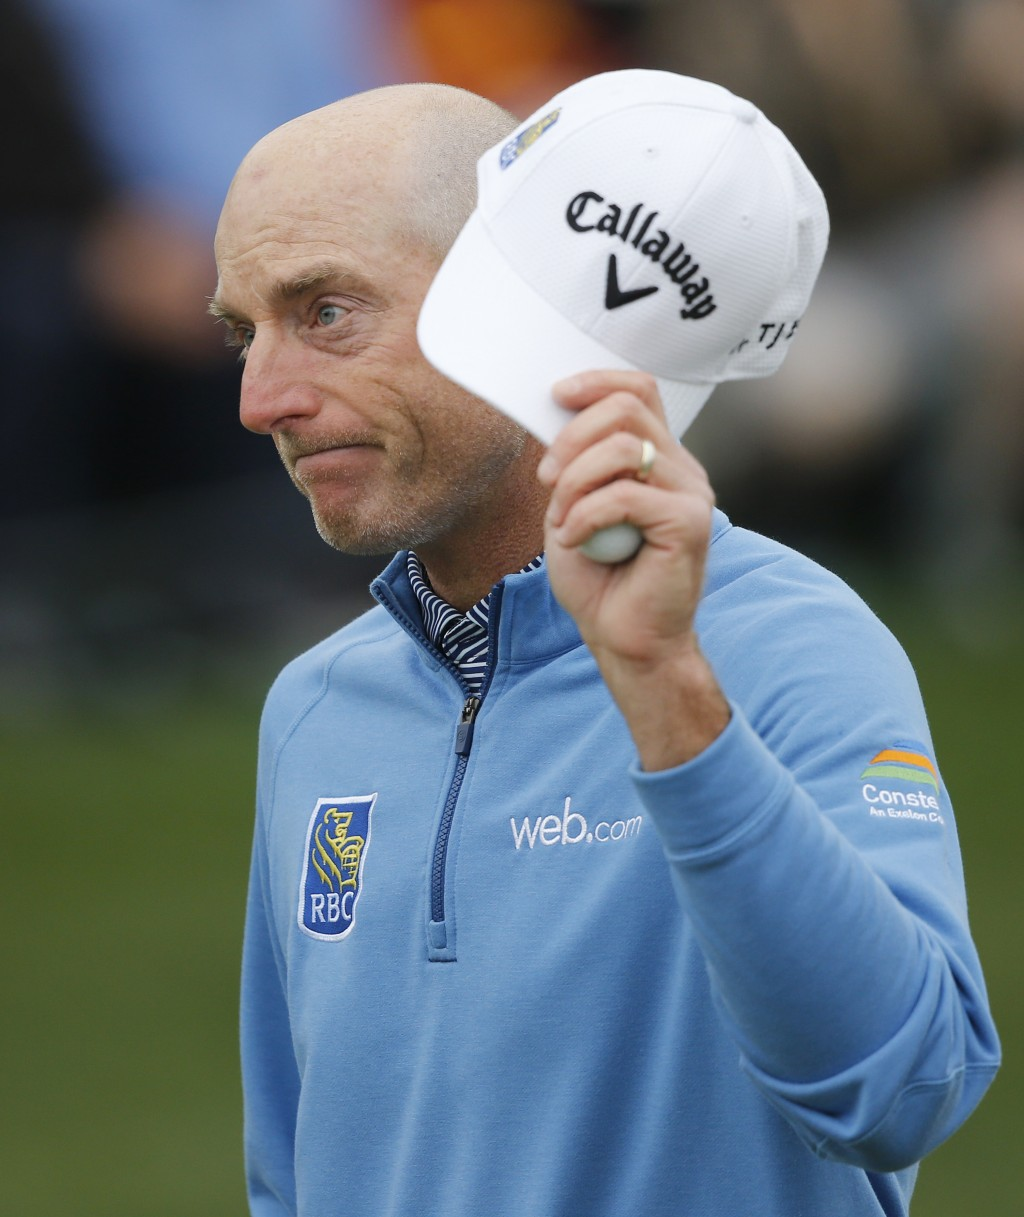 Jim Furyk tips his cap to the gallery after finishing his round during The Players Championship golf tournament Sunday, March 17, 2019, in Ponte Vedra...